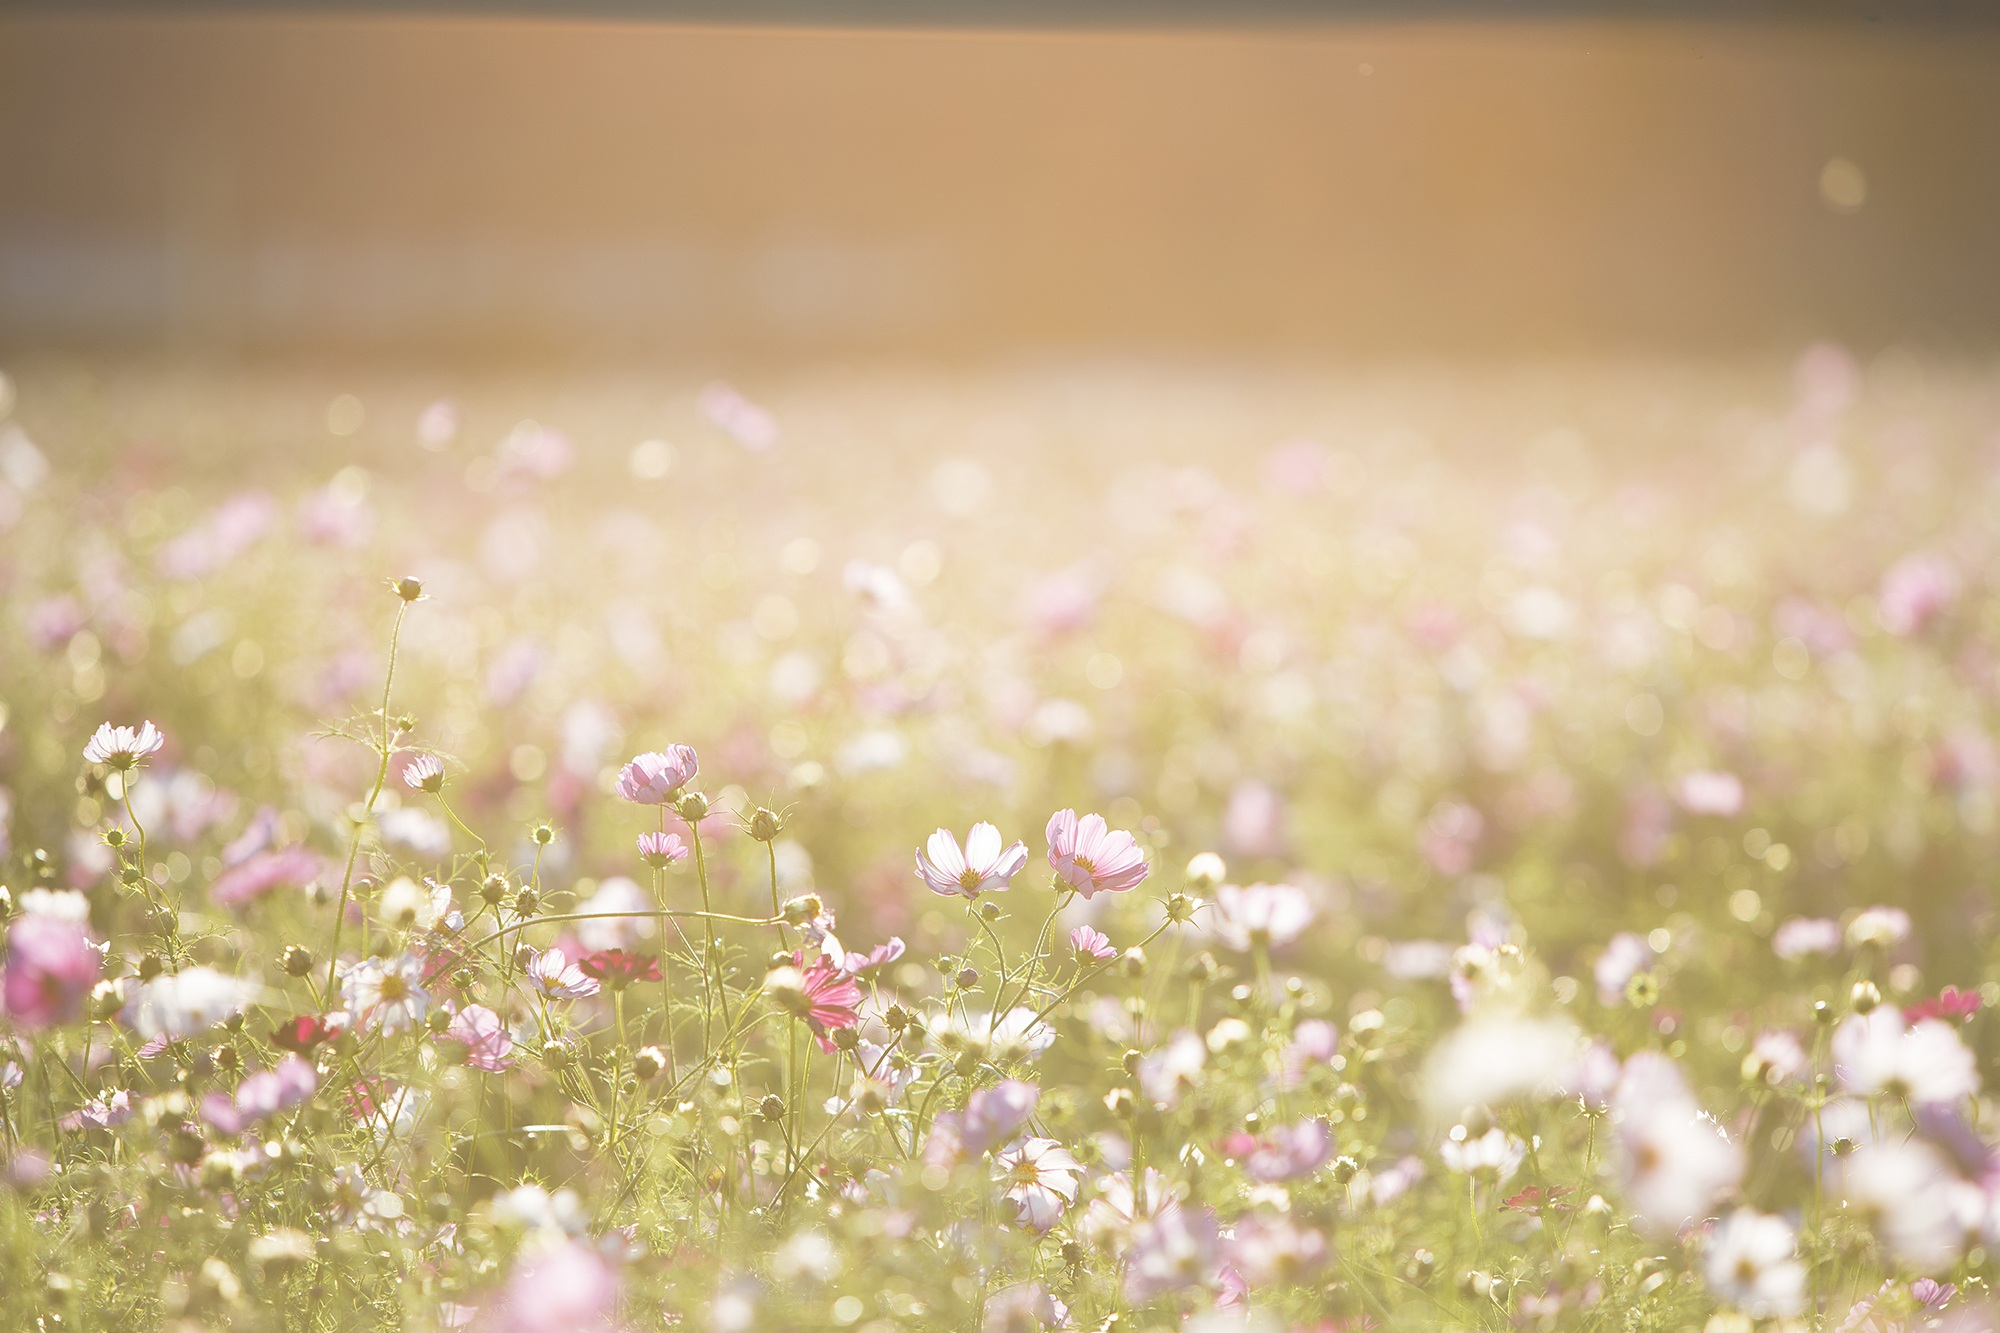 Baby Pink Iphone Wallpaper 1000 Great Flower Background Photos 183 Pexels 183 Free Stock